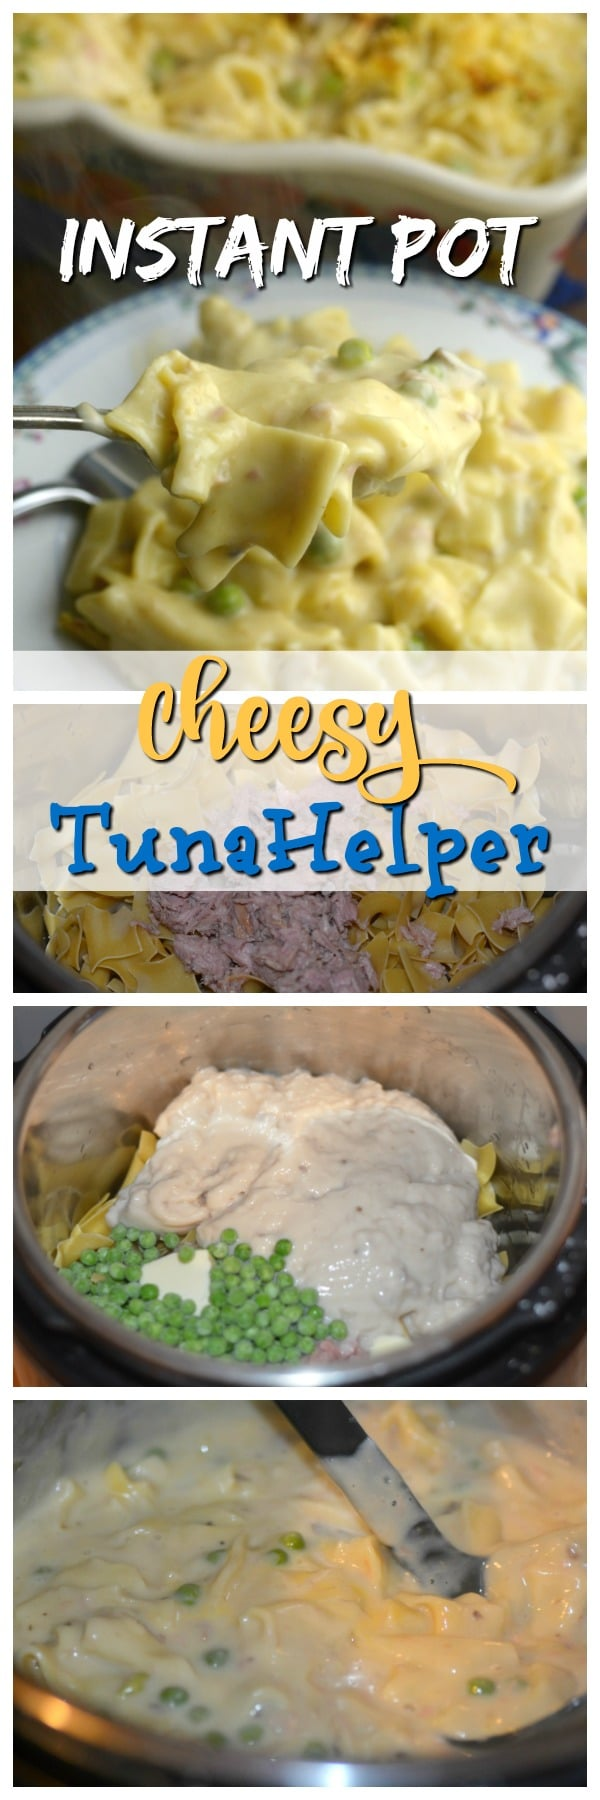 Instant Pot Cheesy Tuna Helper